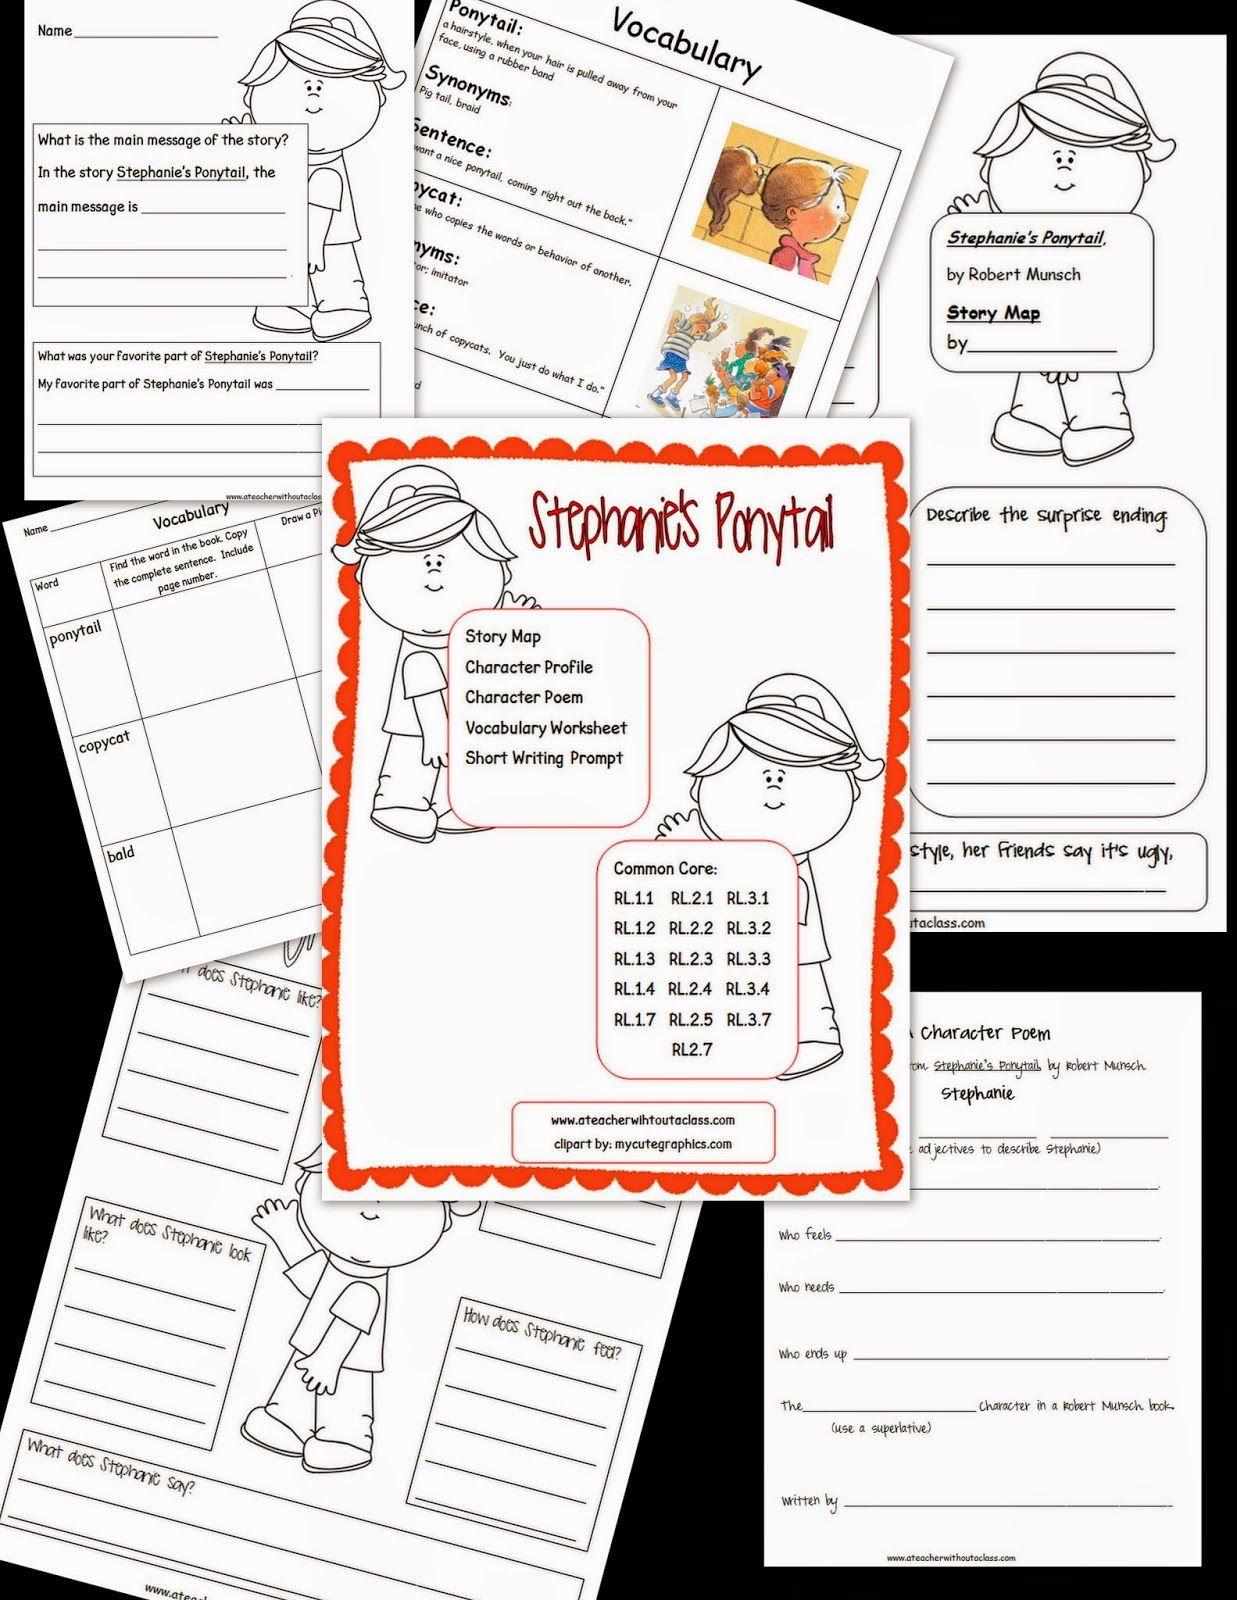 Comprehension Packet For Robert Munsch S Stephanie S Ponytail Included Story Map Character